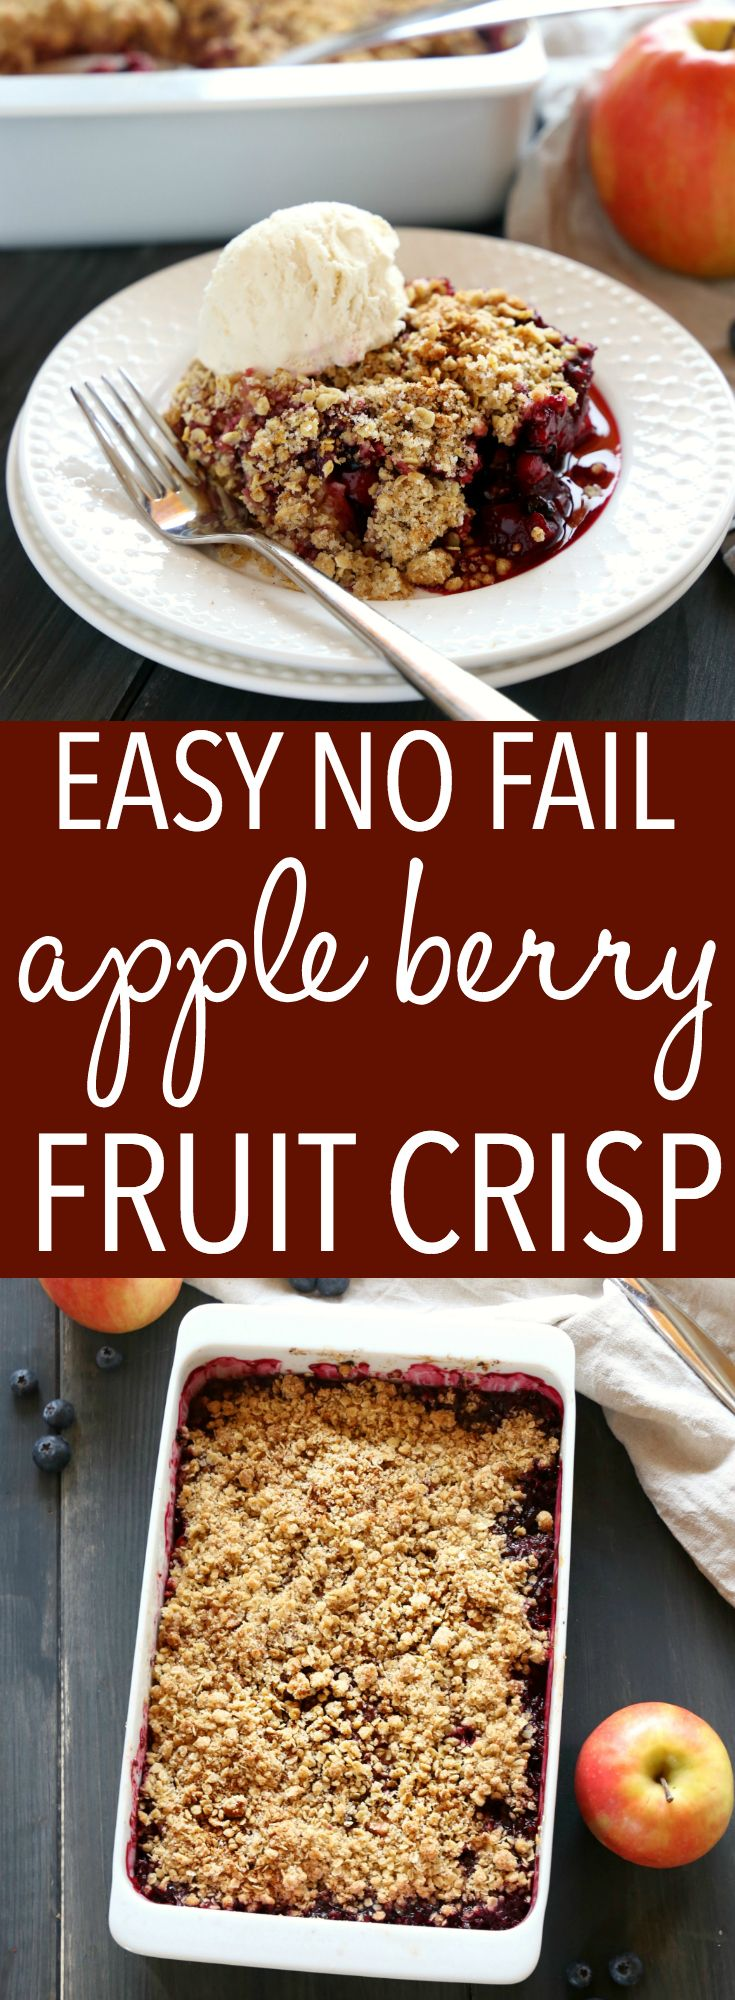 This Easy Apple Berry Fruit Crisp is the perfect easy dessert for beginning bakers! Just a few simple ingredients stand between you and this delicious, healthier dessert! Make it with fresh or frozen fruit, and gluten-free! Recipe from thebusybaker.ca! #howtomakeapplecrisp #easyapplecrisp #fruitcrisp #healthydessert via @busybakerblog